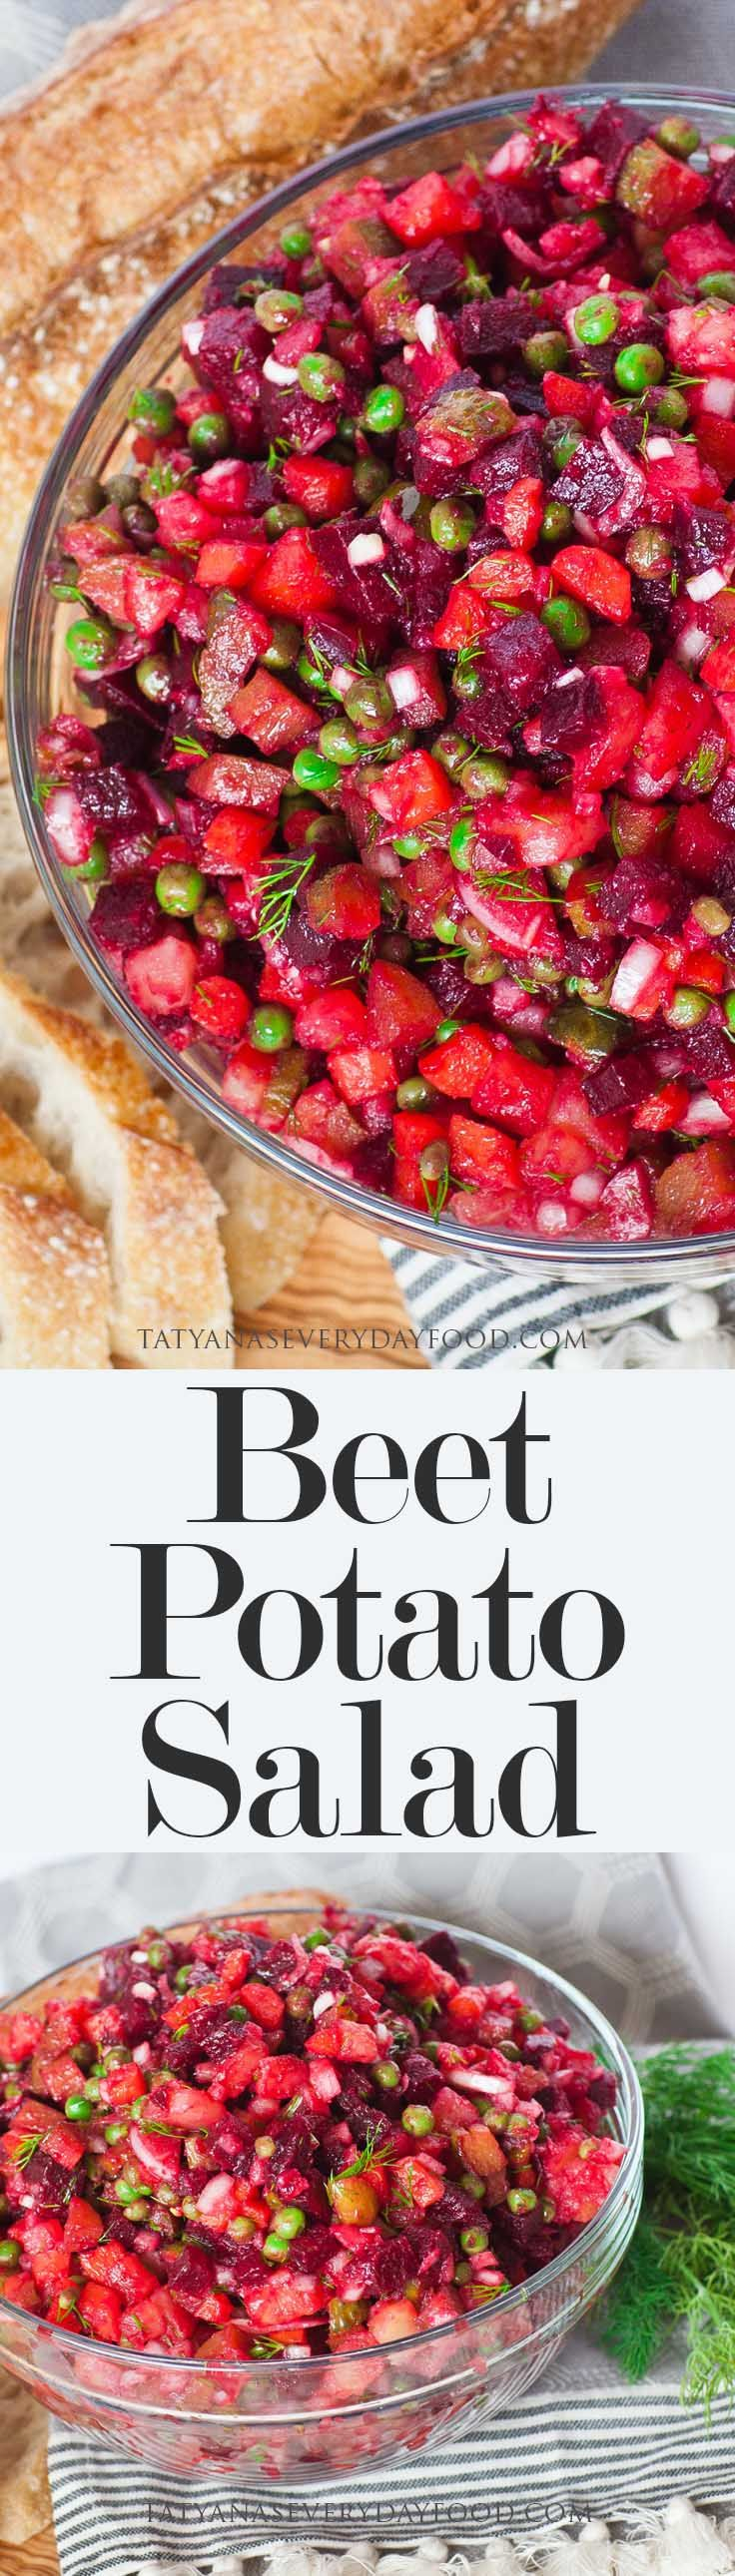 Vinaigrette Beet Potato Salad - Tatyanas Everyday Food